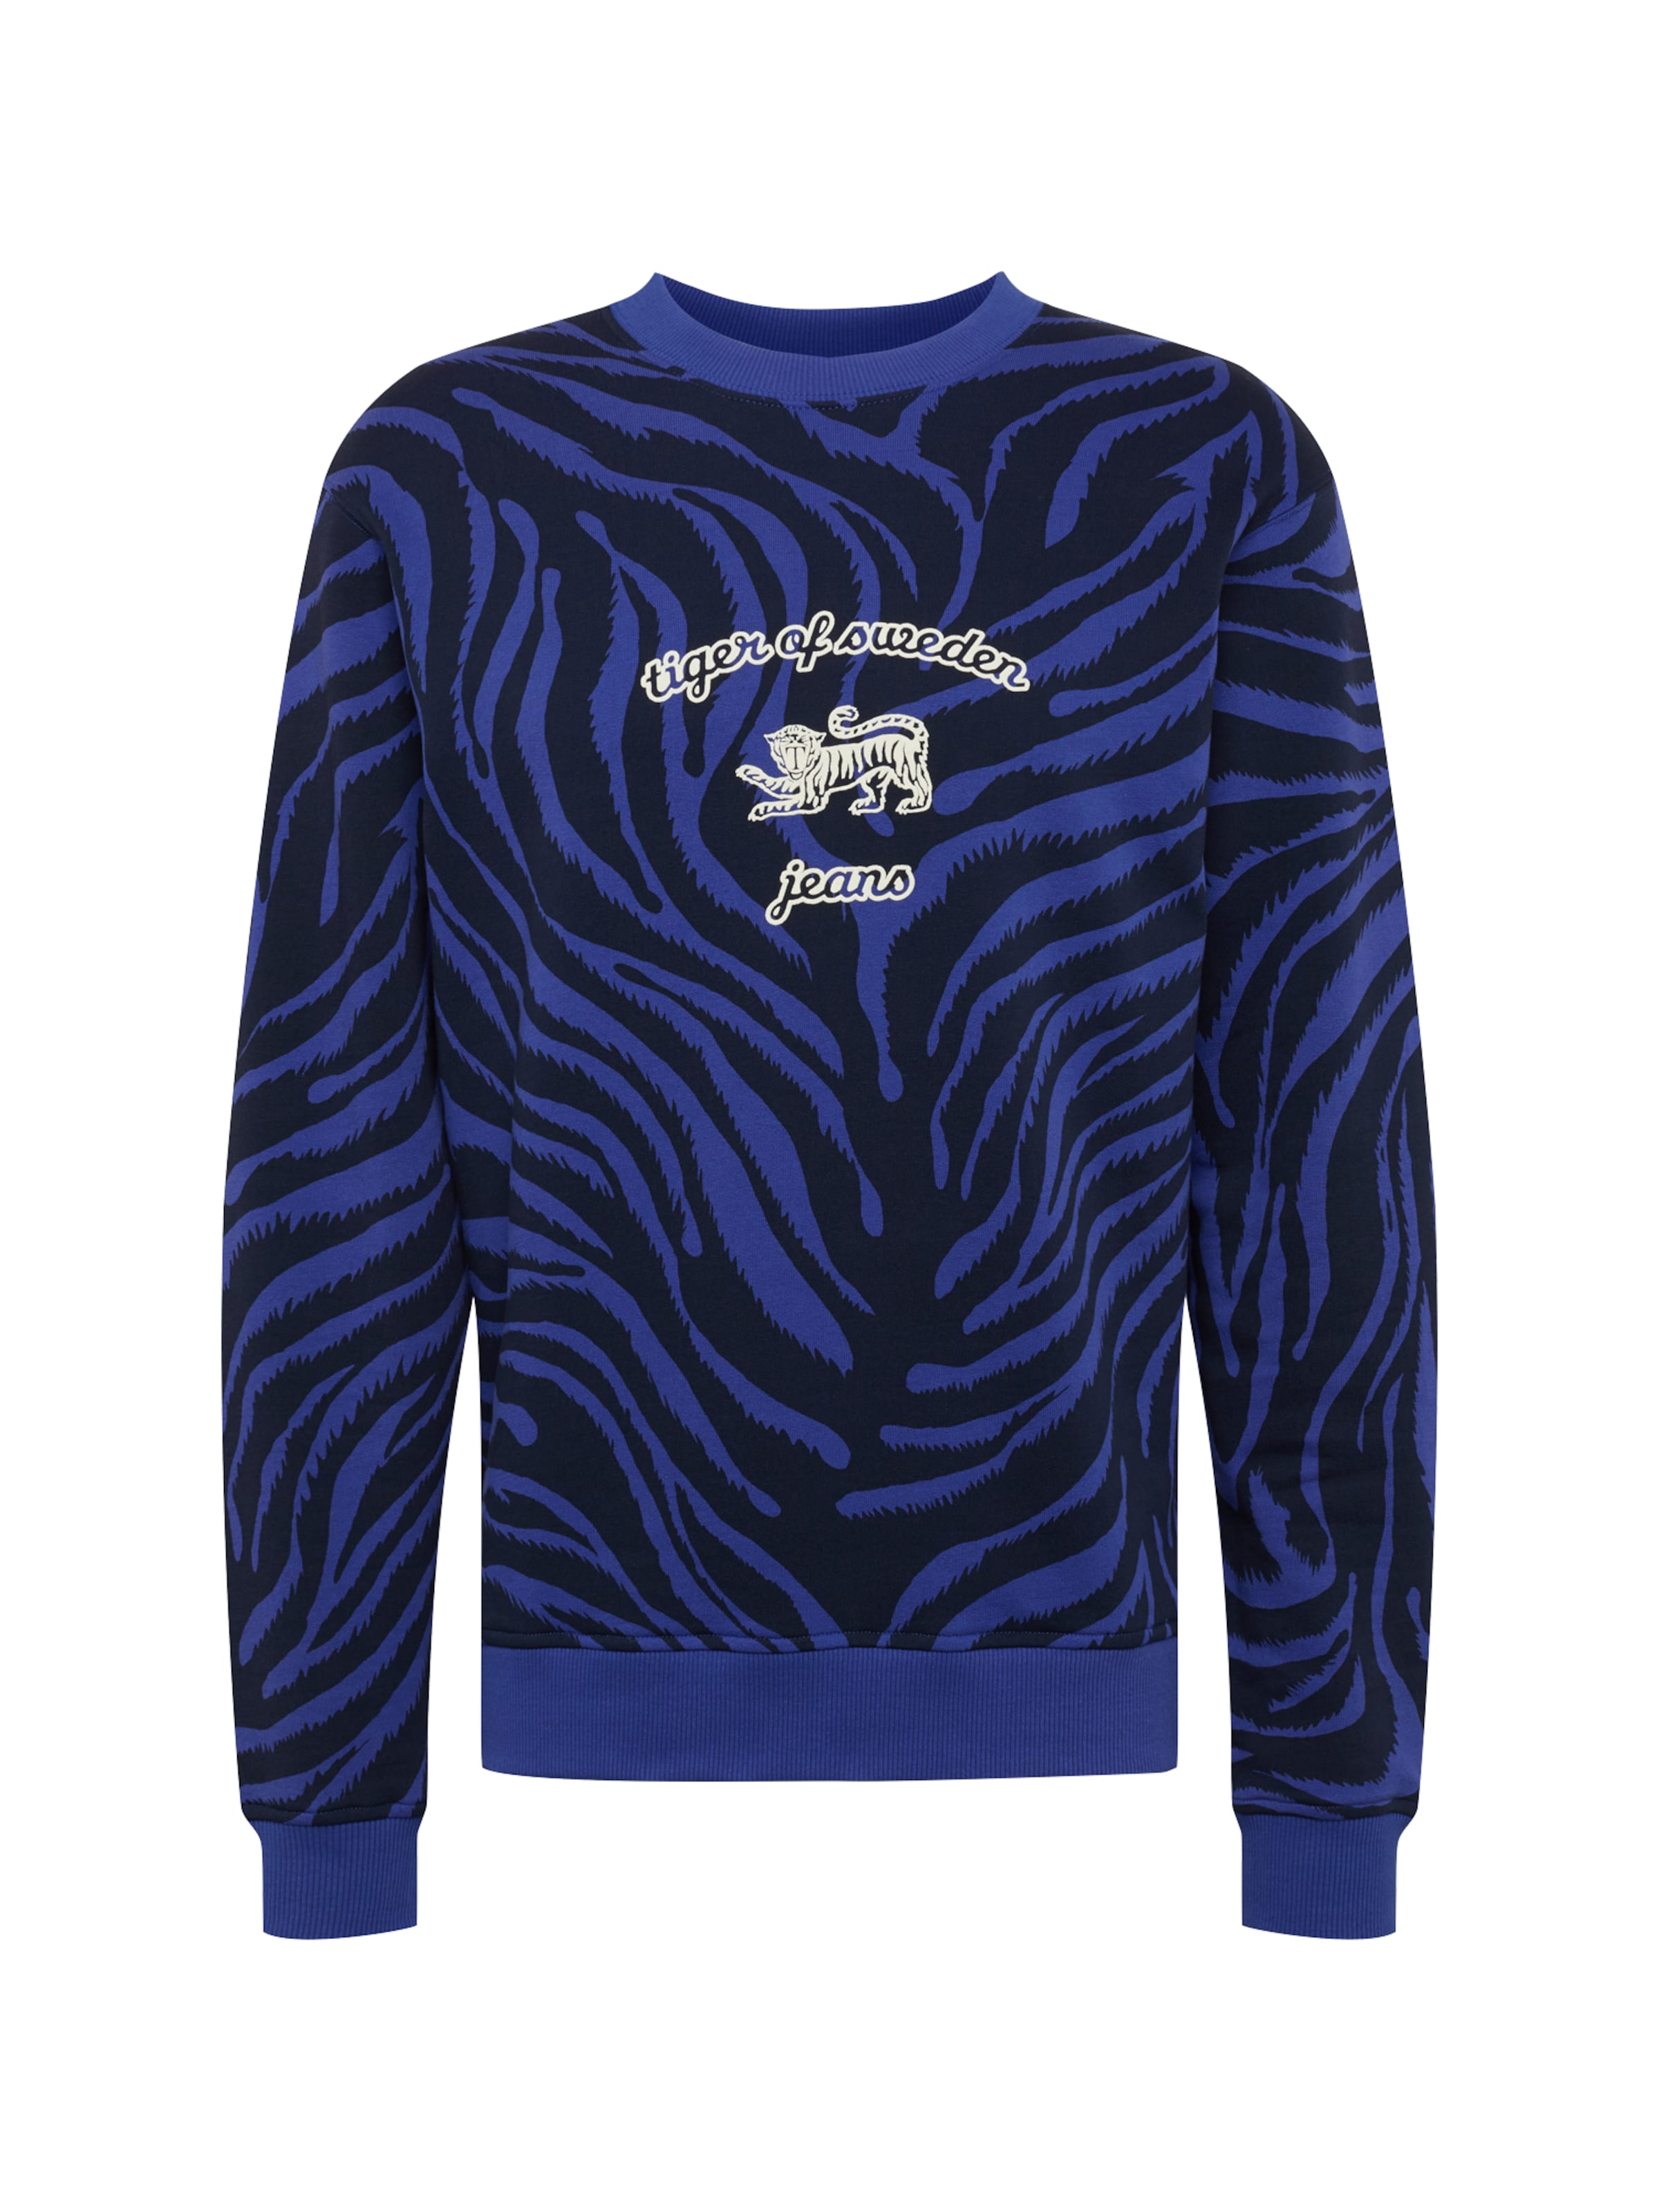 Blanc Bleu Sweat Sweden shirt 'tana T' Tiger En RoiNoir Of W2Ie9bDHEY